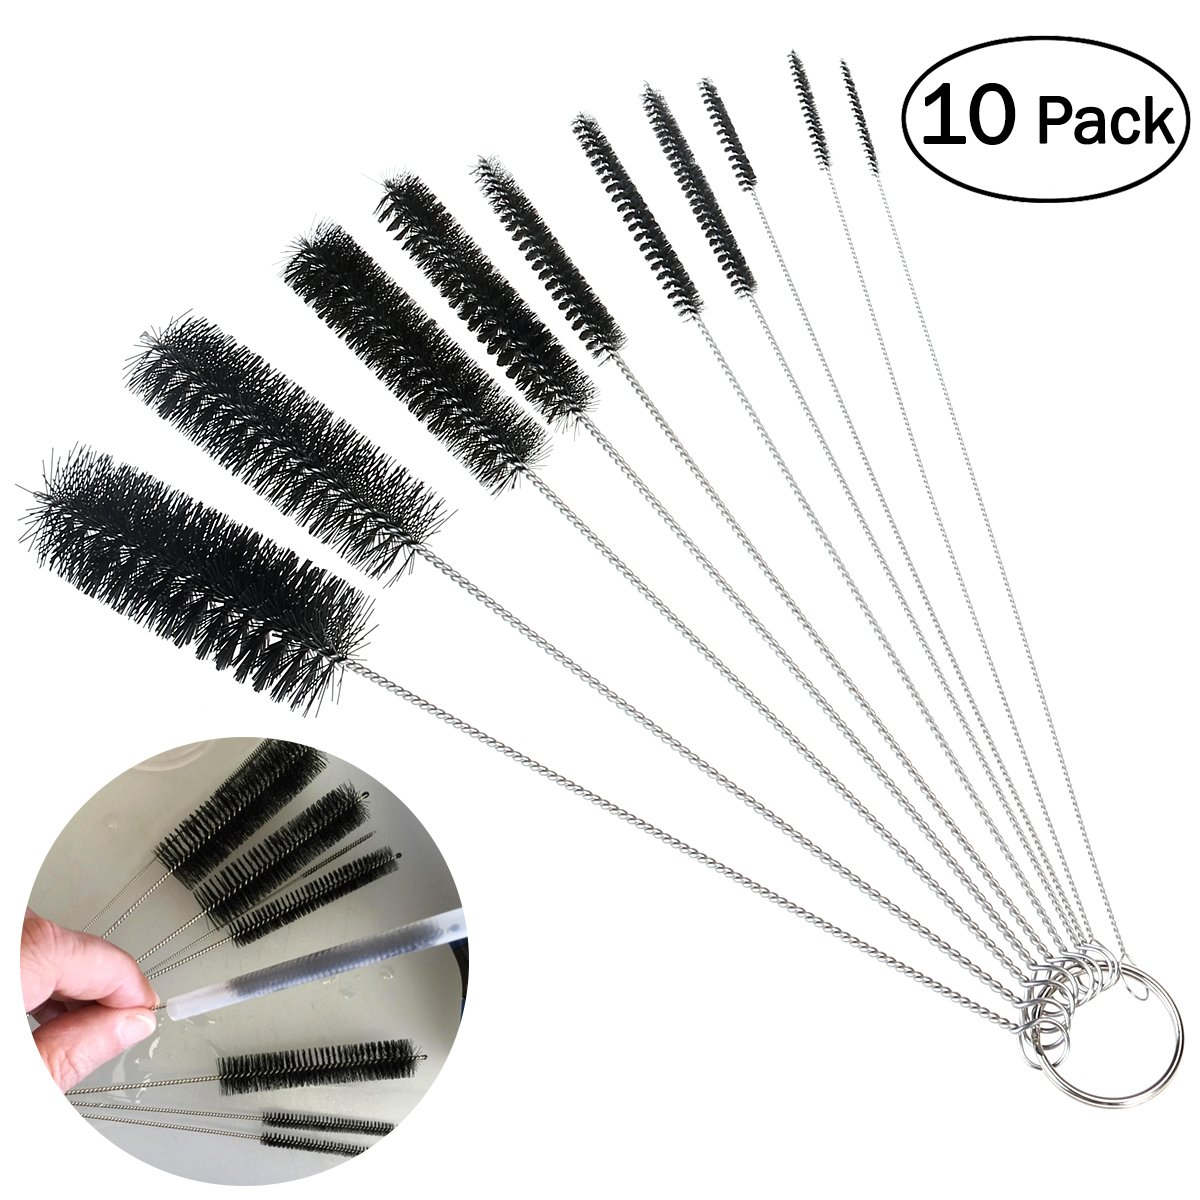 OUNONA 10 Pcs Nylon Tube Brushes Straw Set for Drinking Straws / Glasses / Keyboards / Jewelry Cleaning